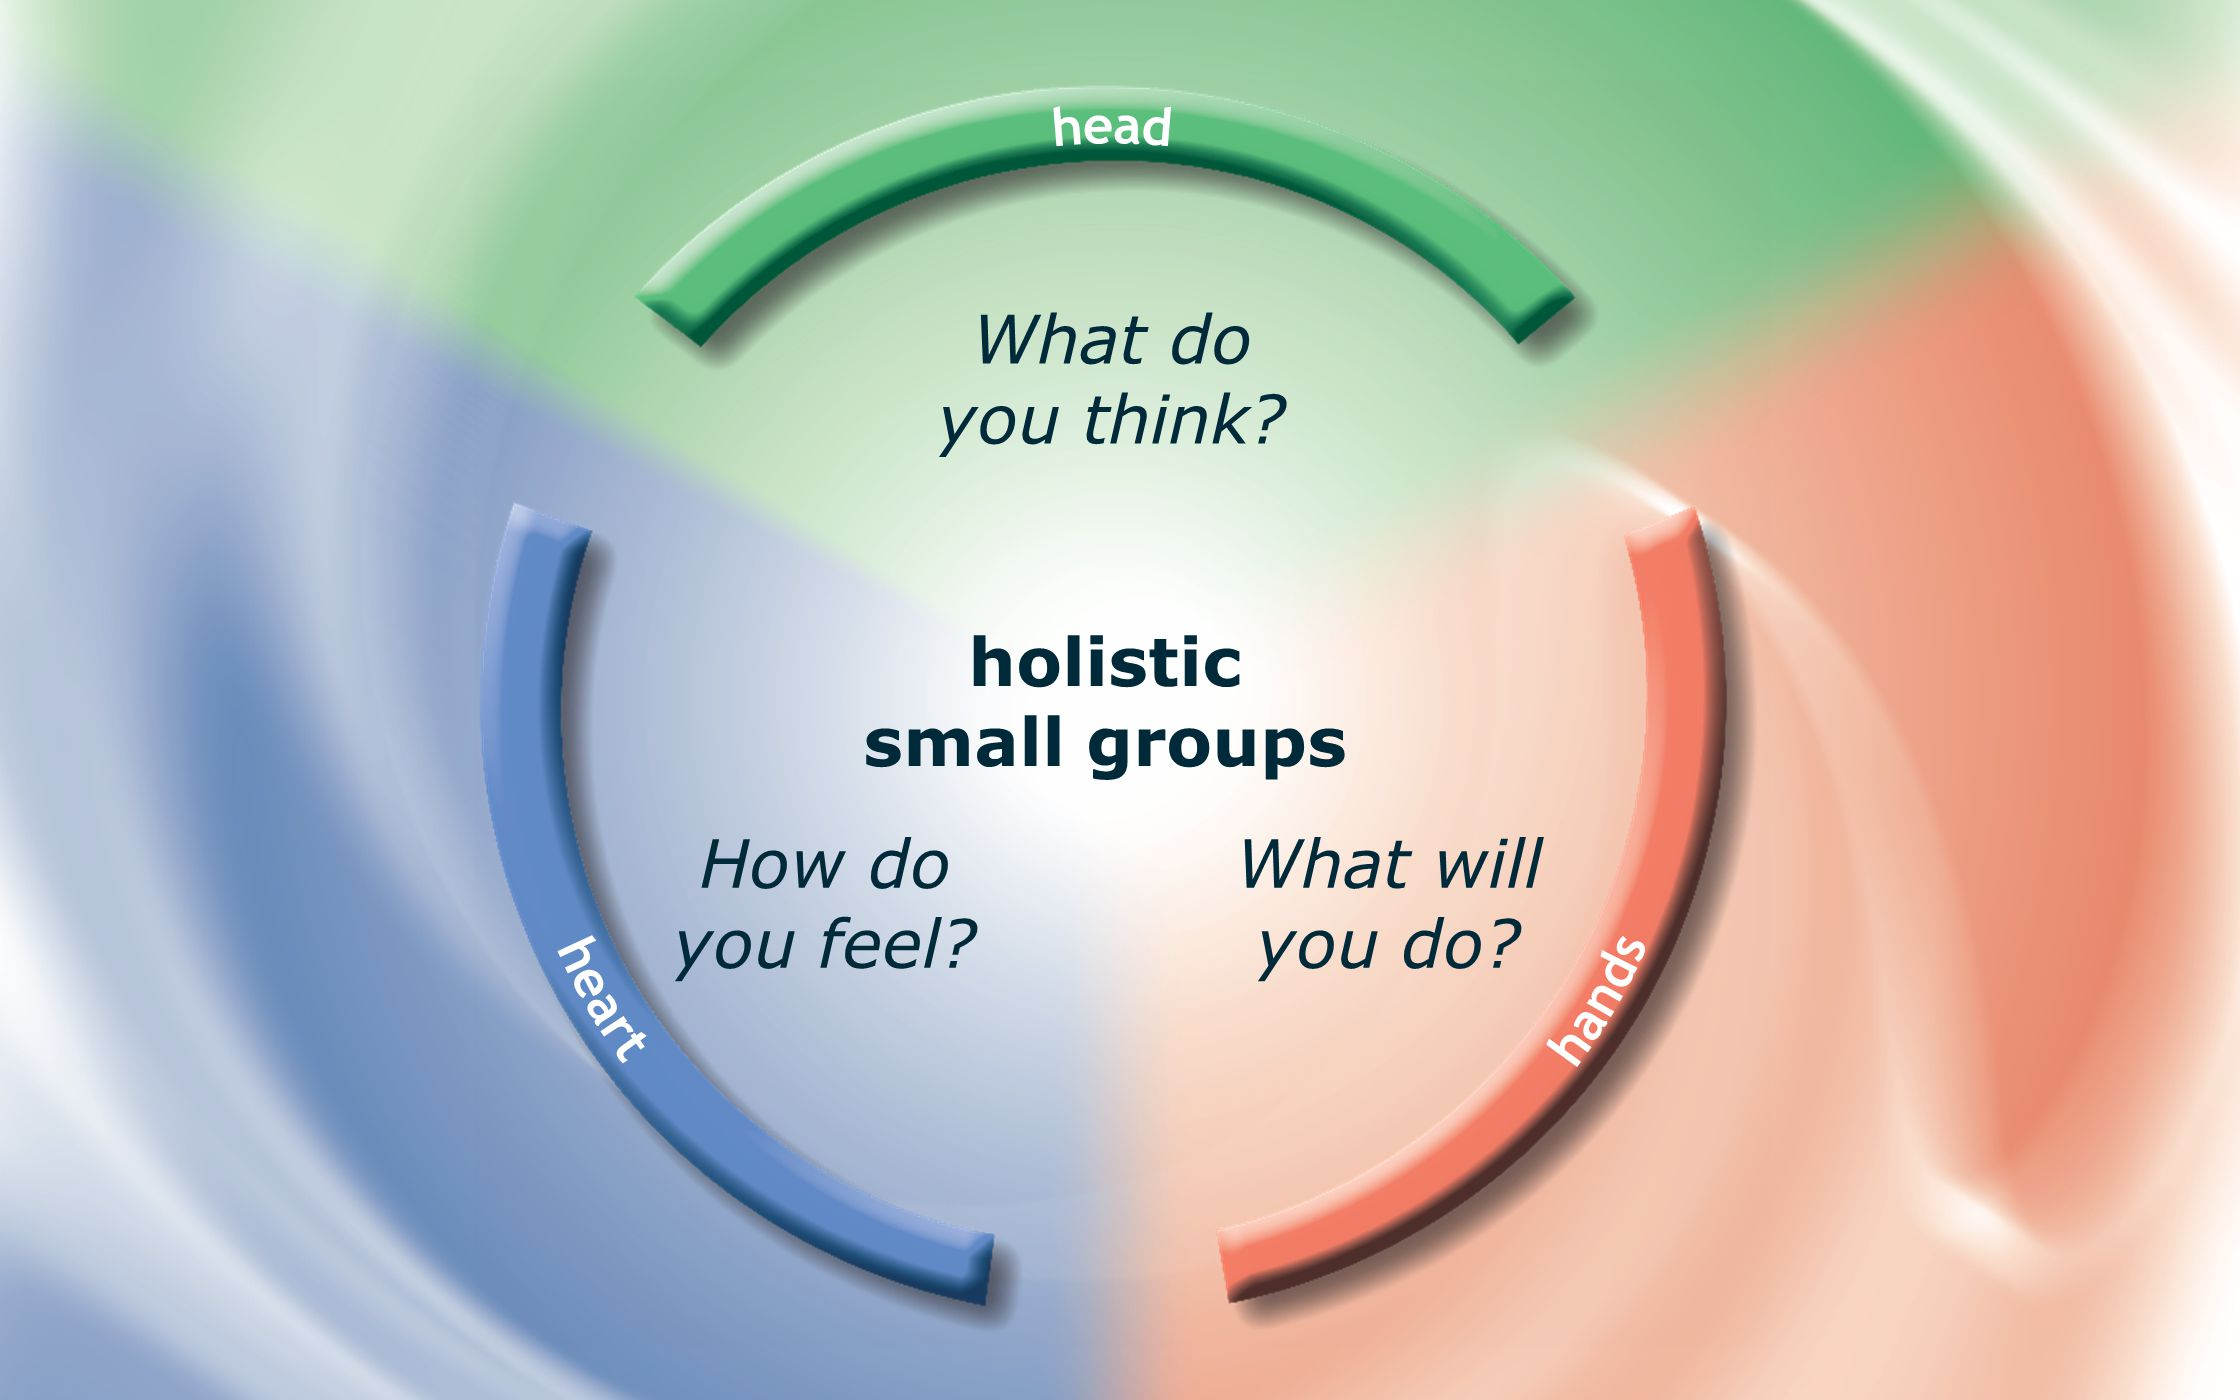 holistic small groups What do you think What will you do How do you feel